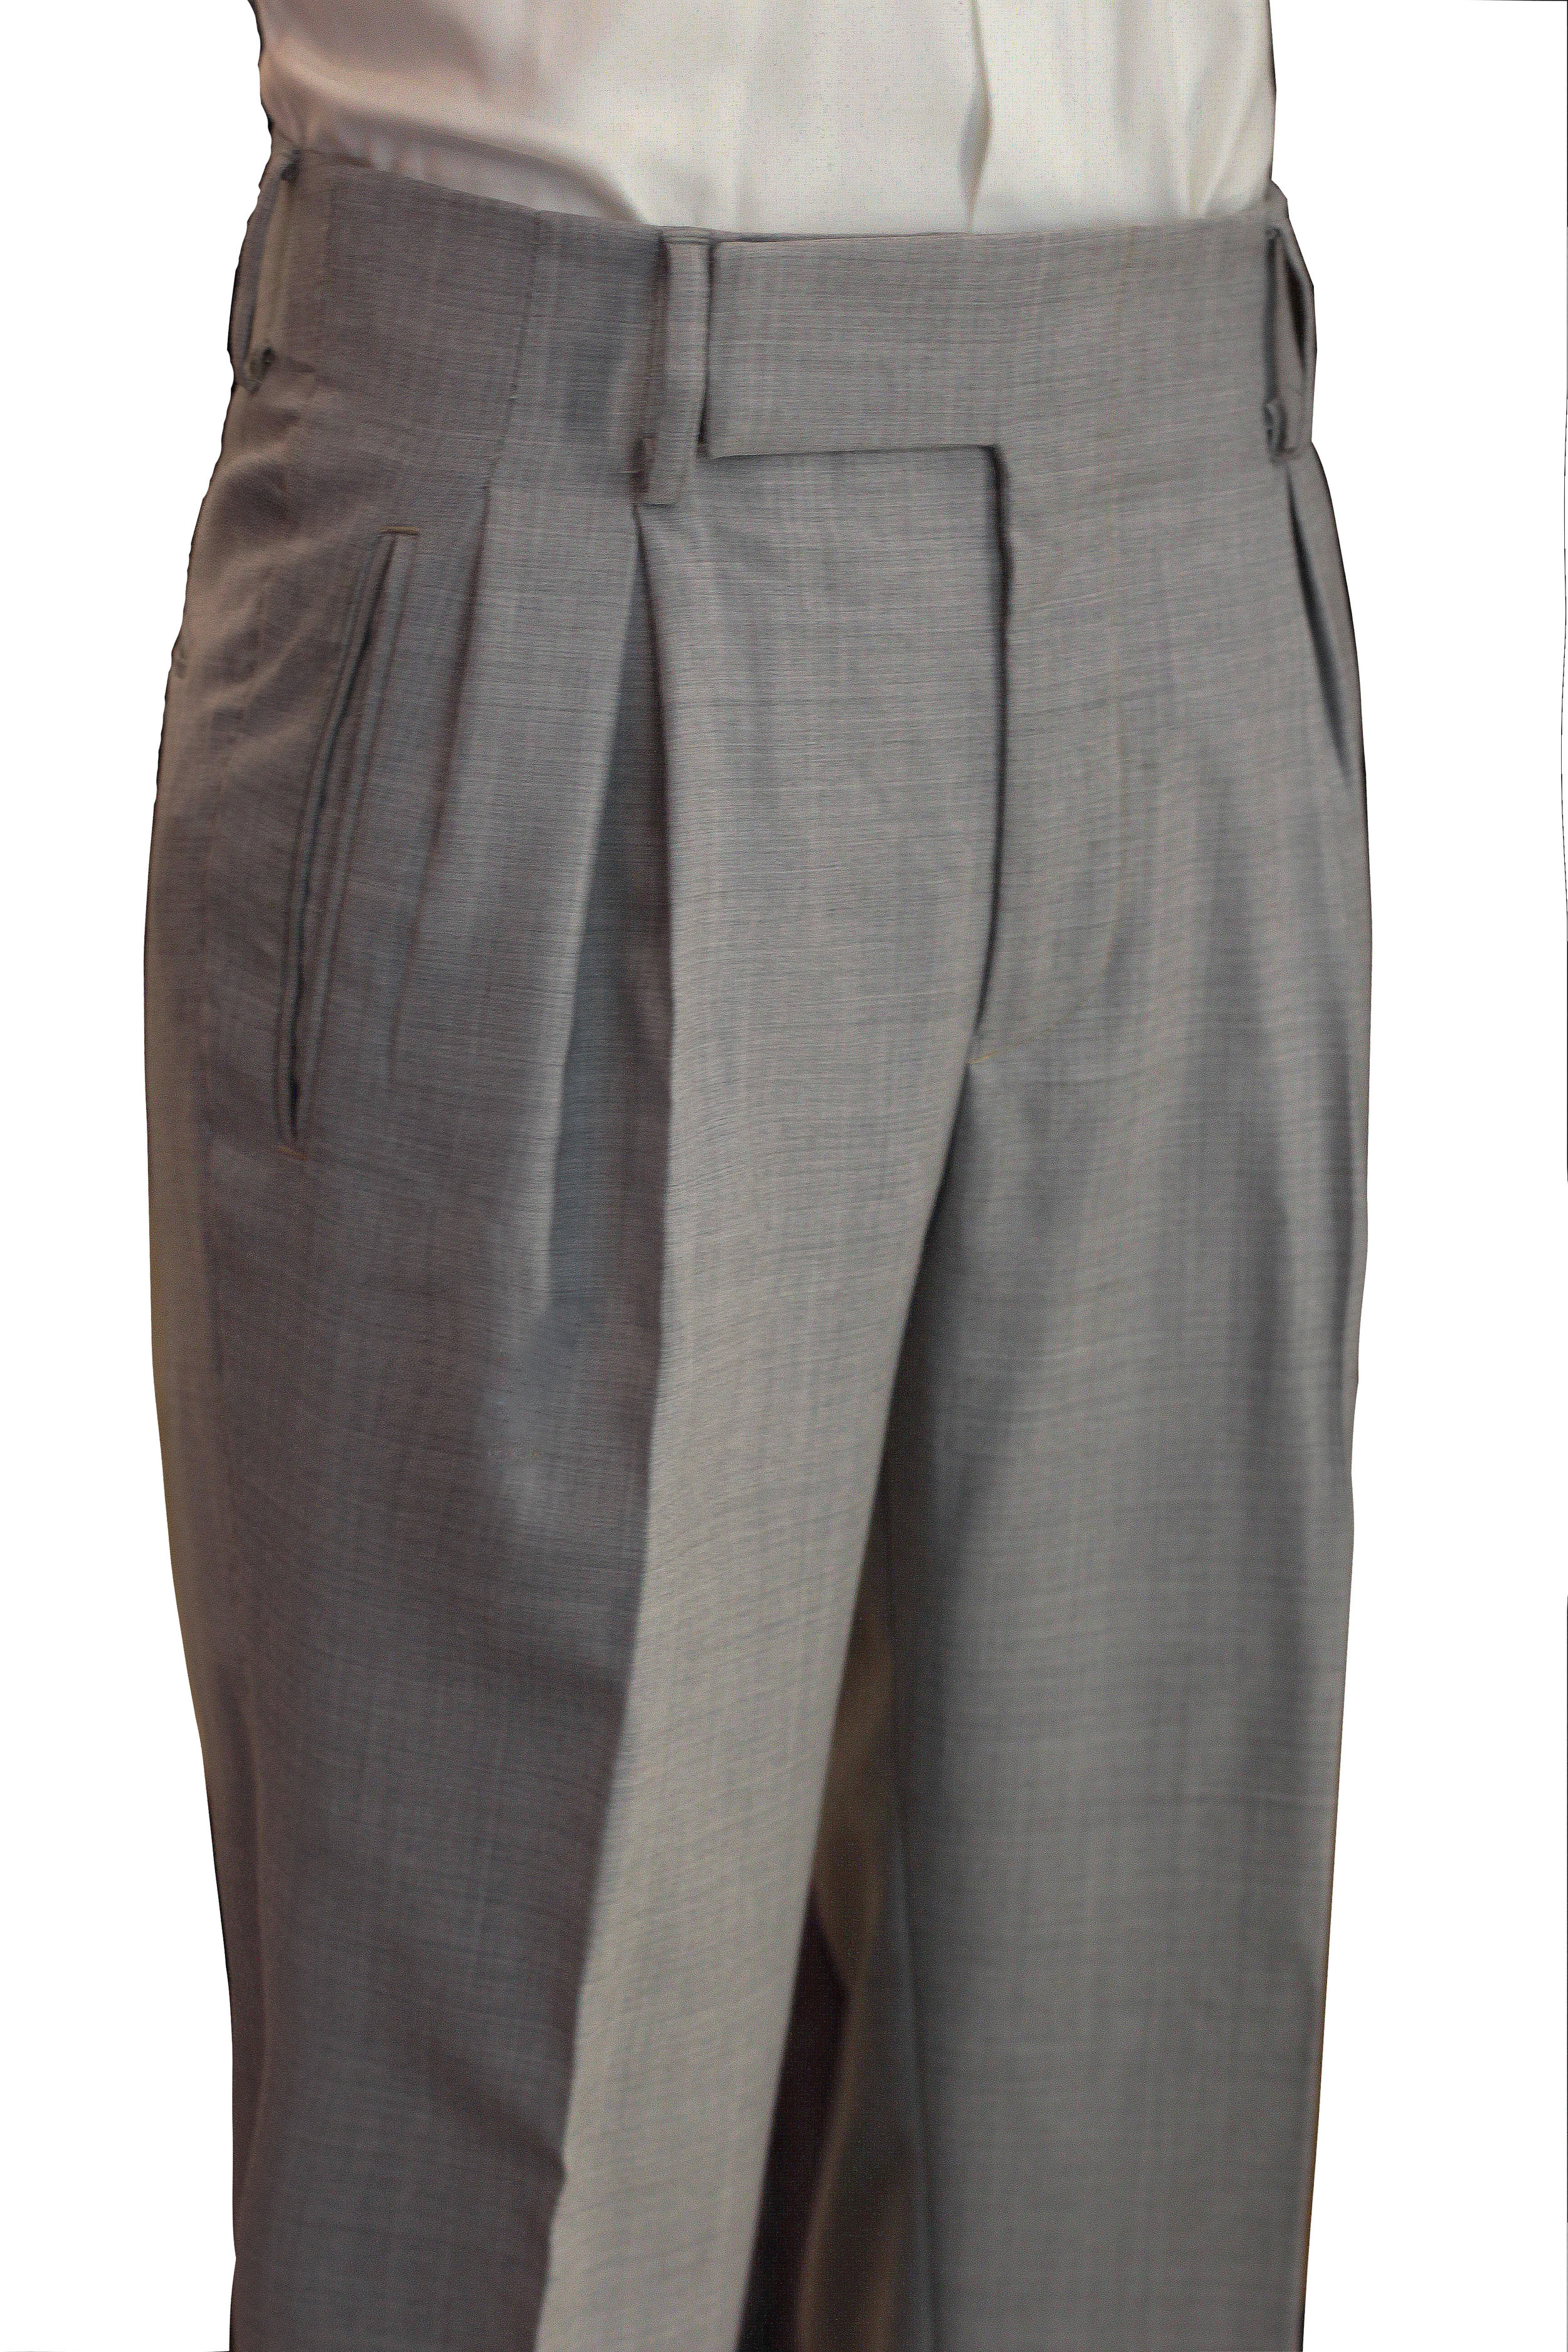 Inverted Pleats with Hollywood waistband